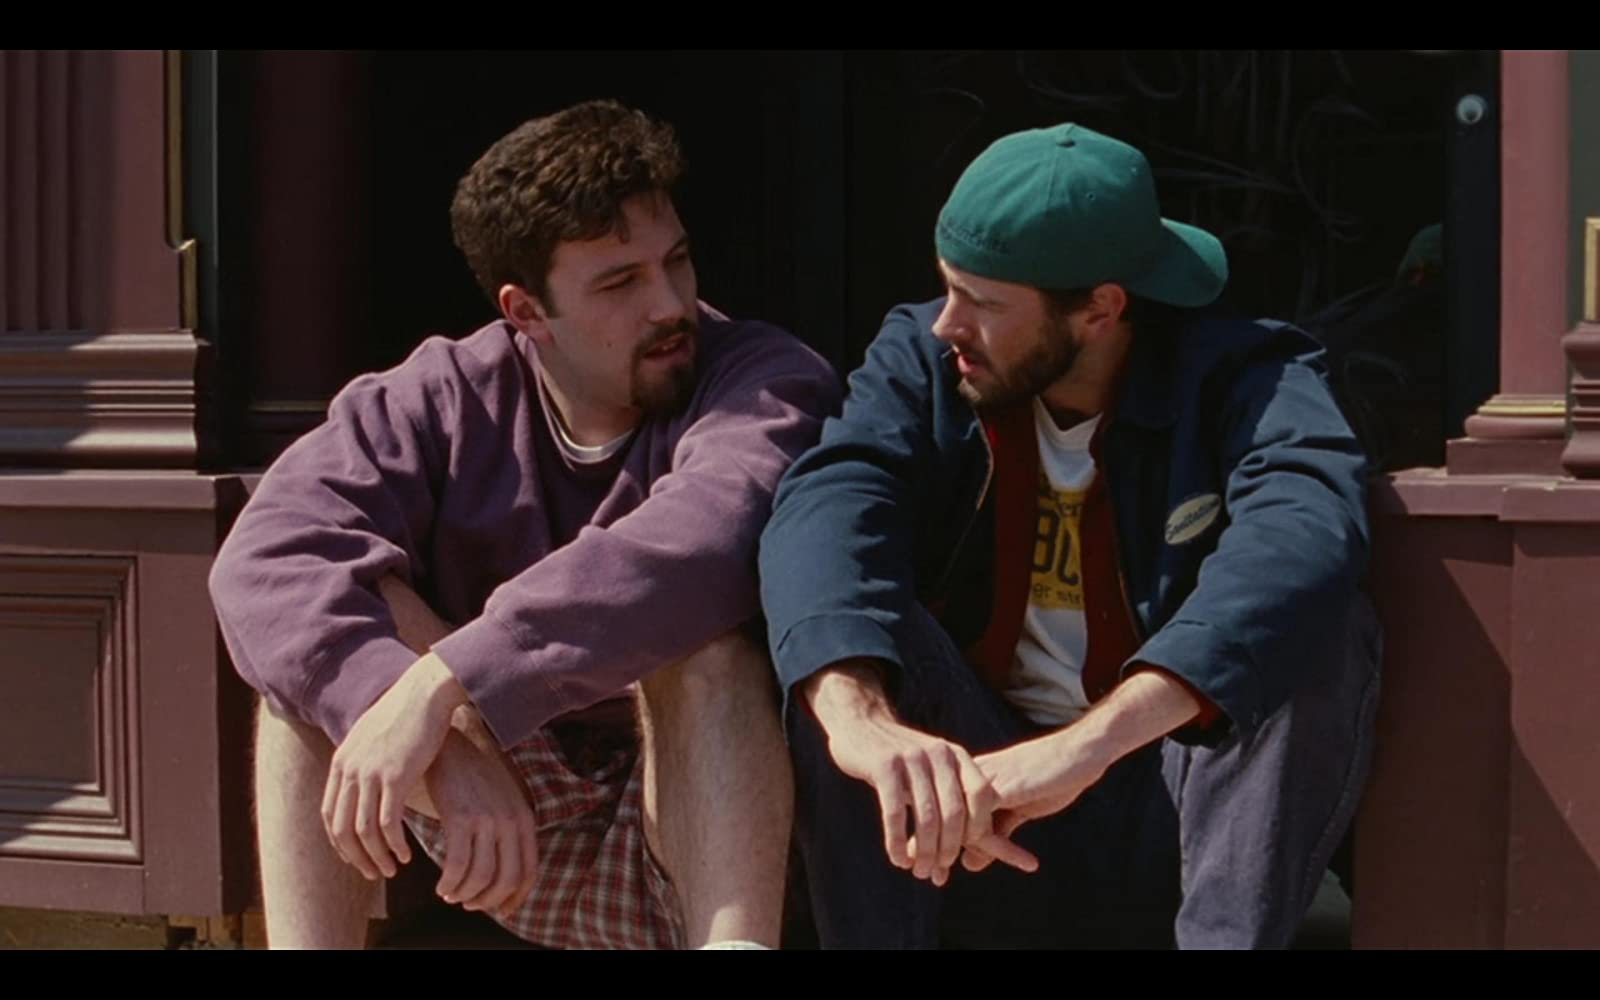 Ben Affleck and Jason Lee in Chasing Amy (1997)